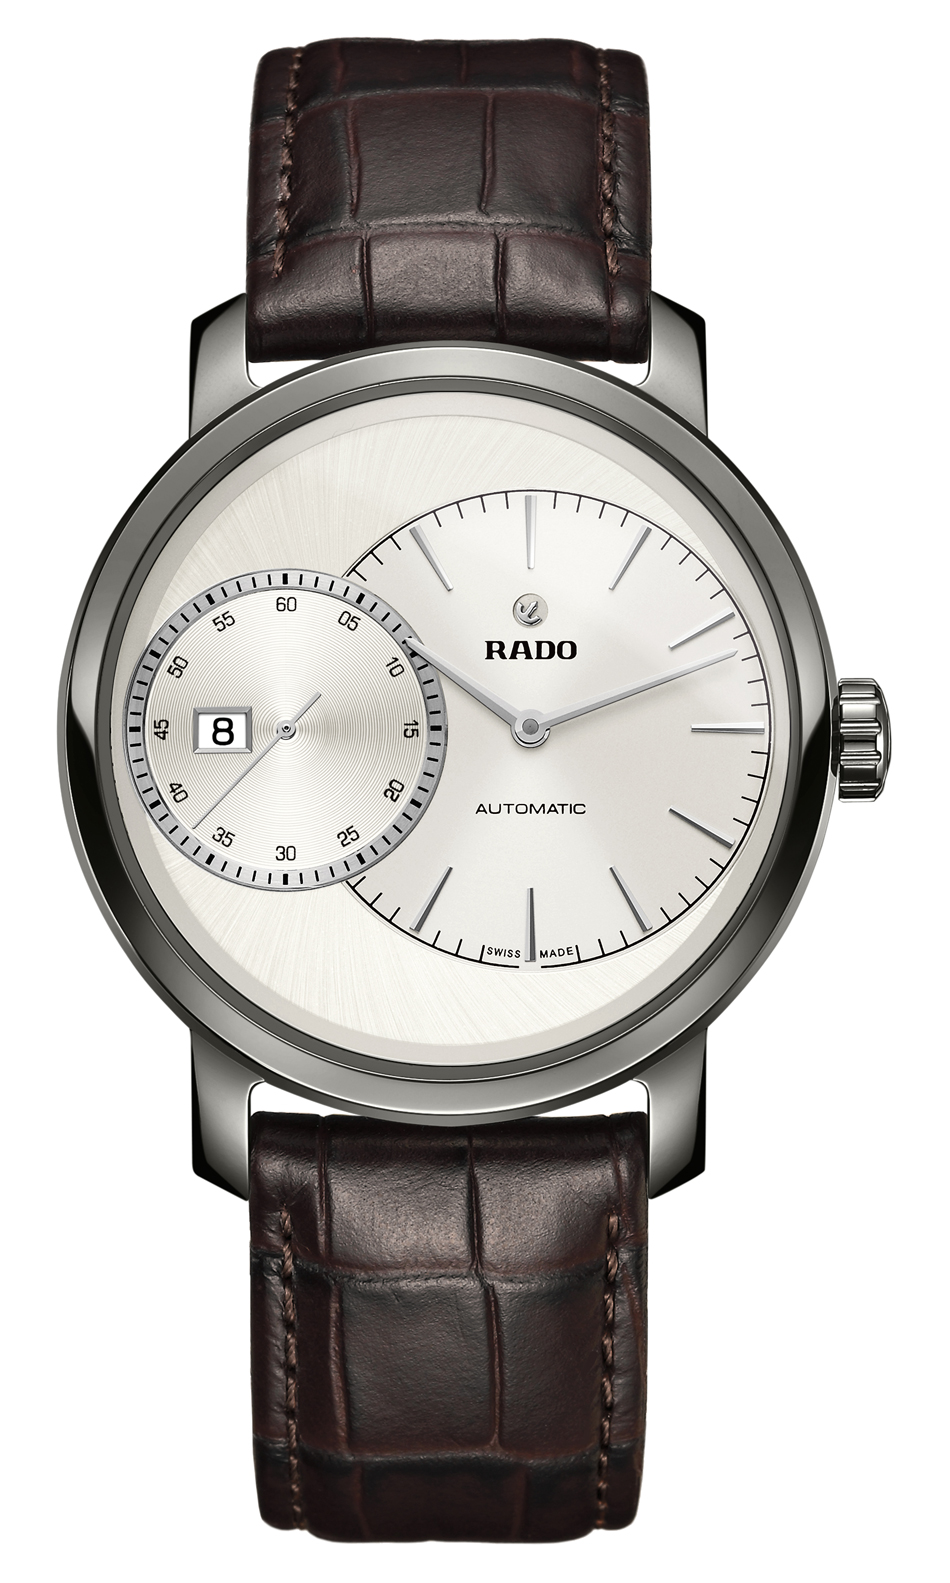 PR_Rado_DiaMaster_Grande_Seconde_657_0129_3_410